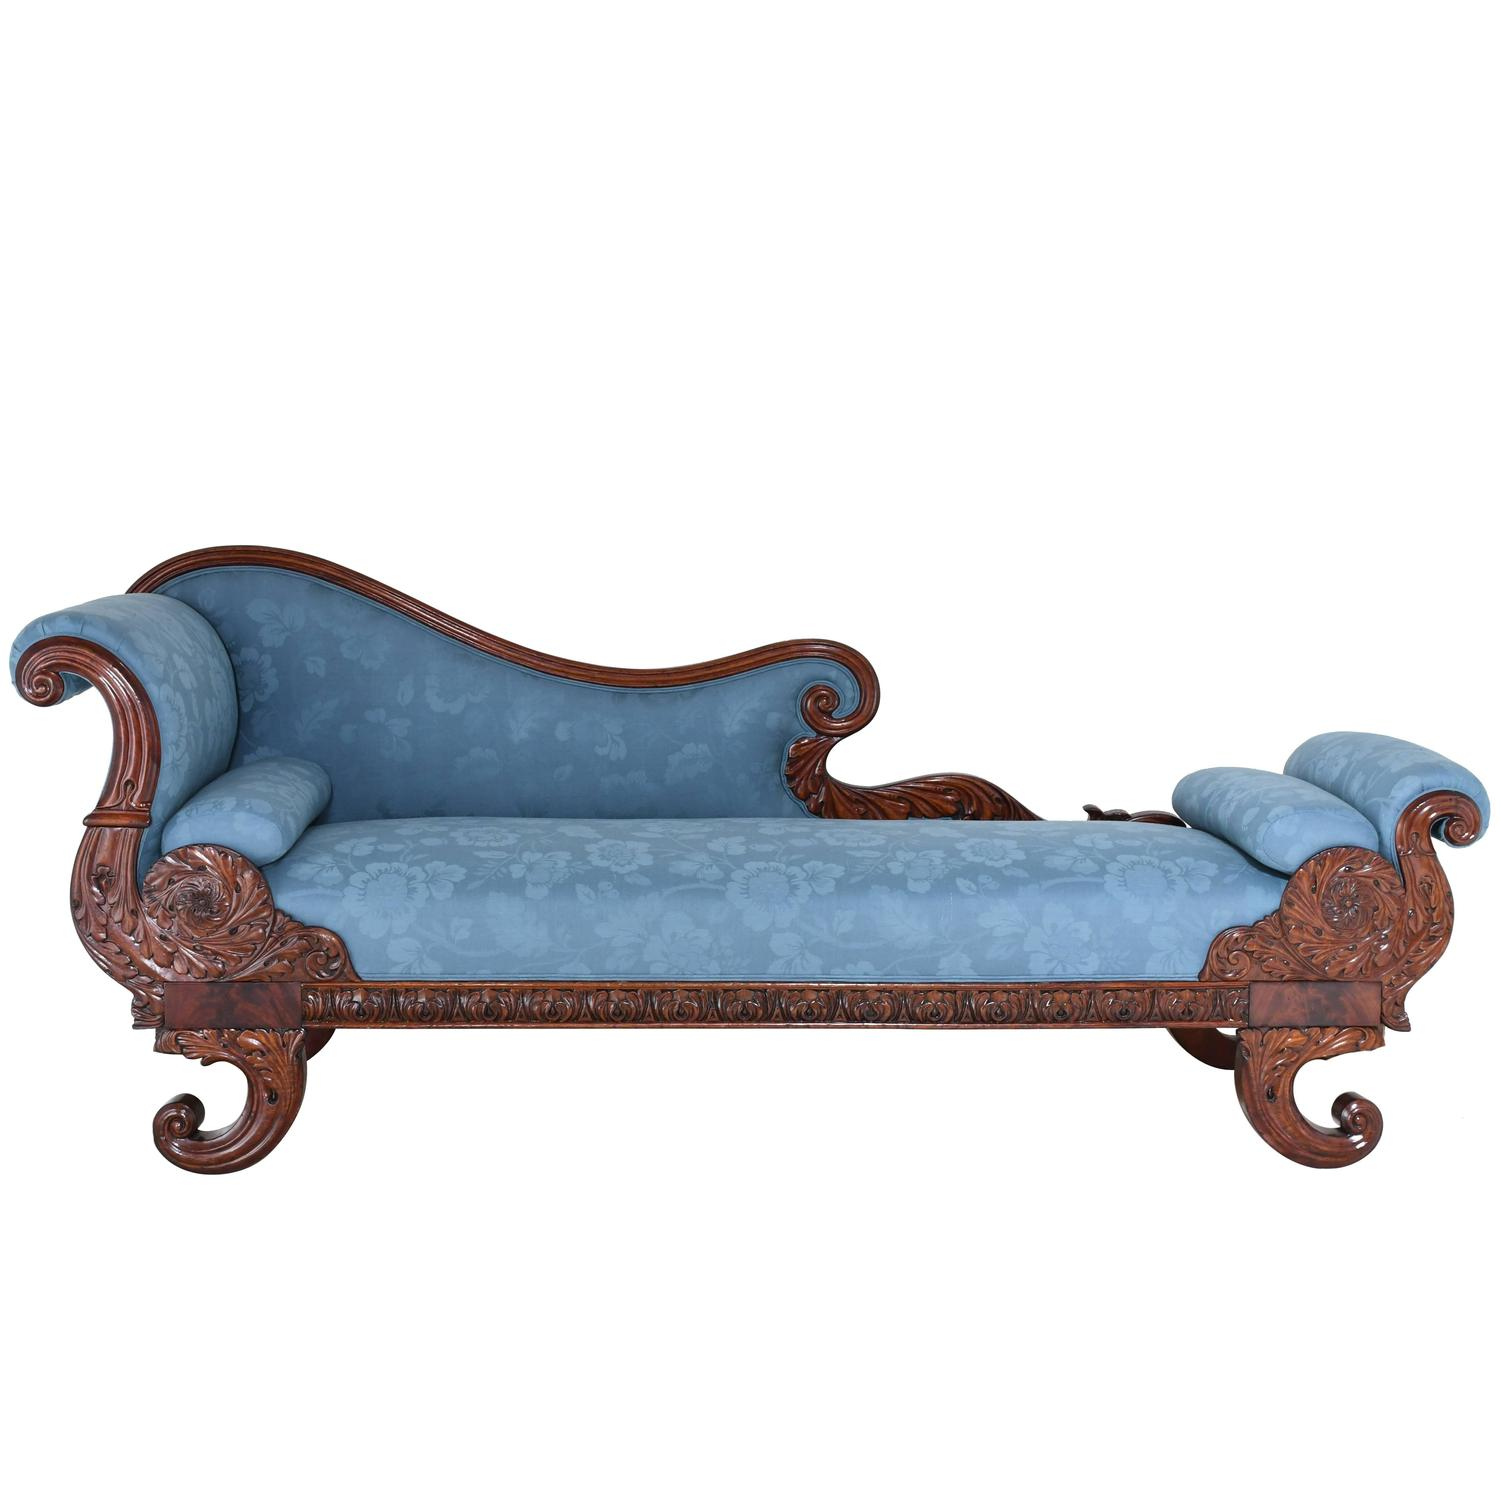 19th Century Empire Recamier Or Fainting Couch In Mahogany With Upholstery At 1stdibs